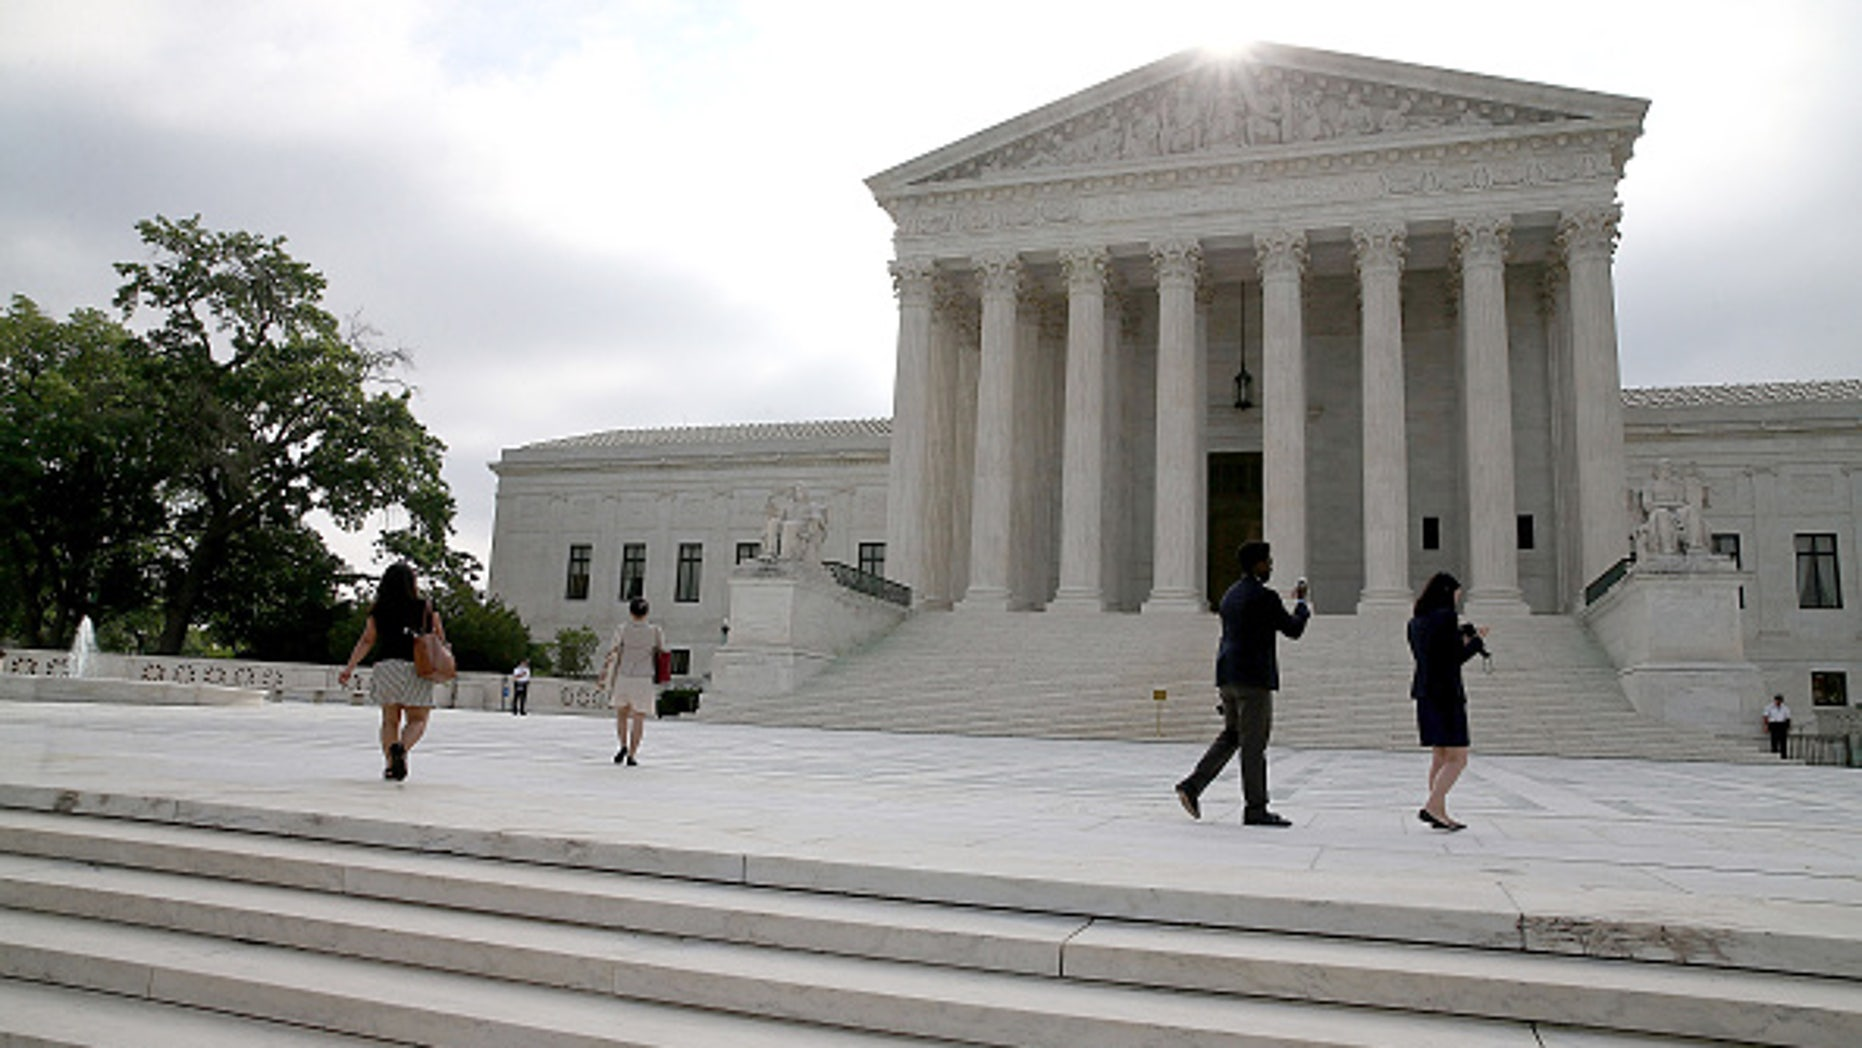 WASHINGTON, DC - JUNE 18:  People gather in front of the Supreme Court Building as the high court is expected to hand down its ruling on gay marriage and Obamacare subsidies.